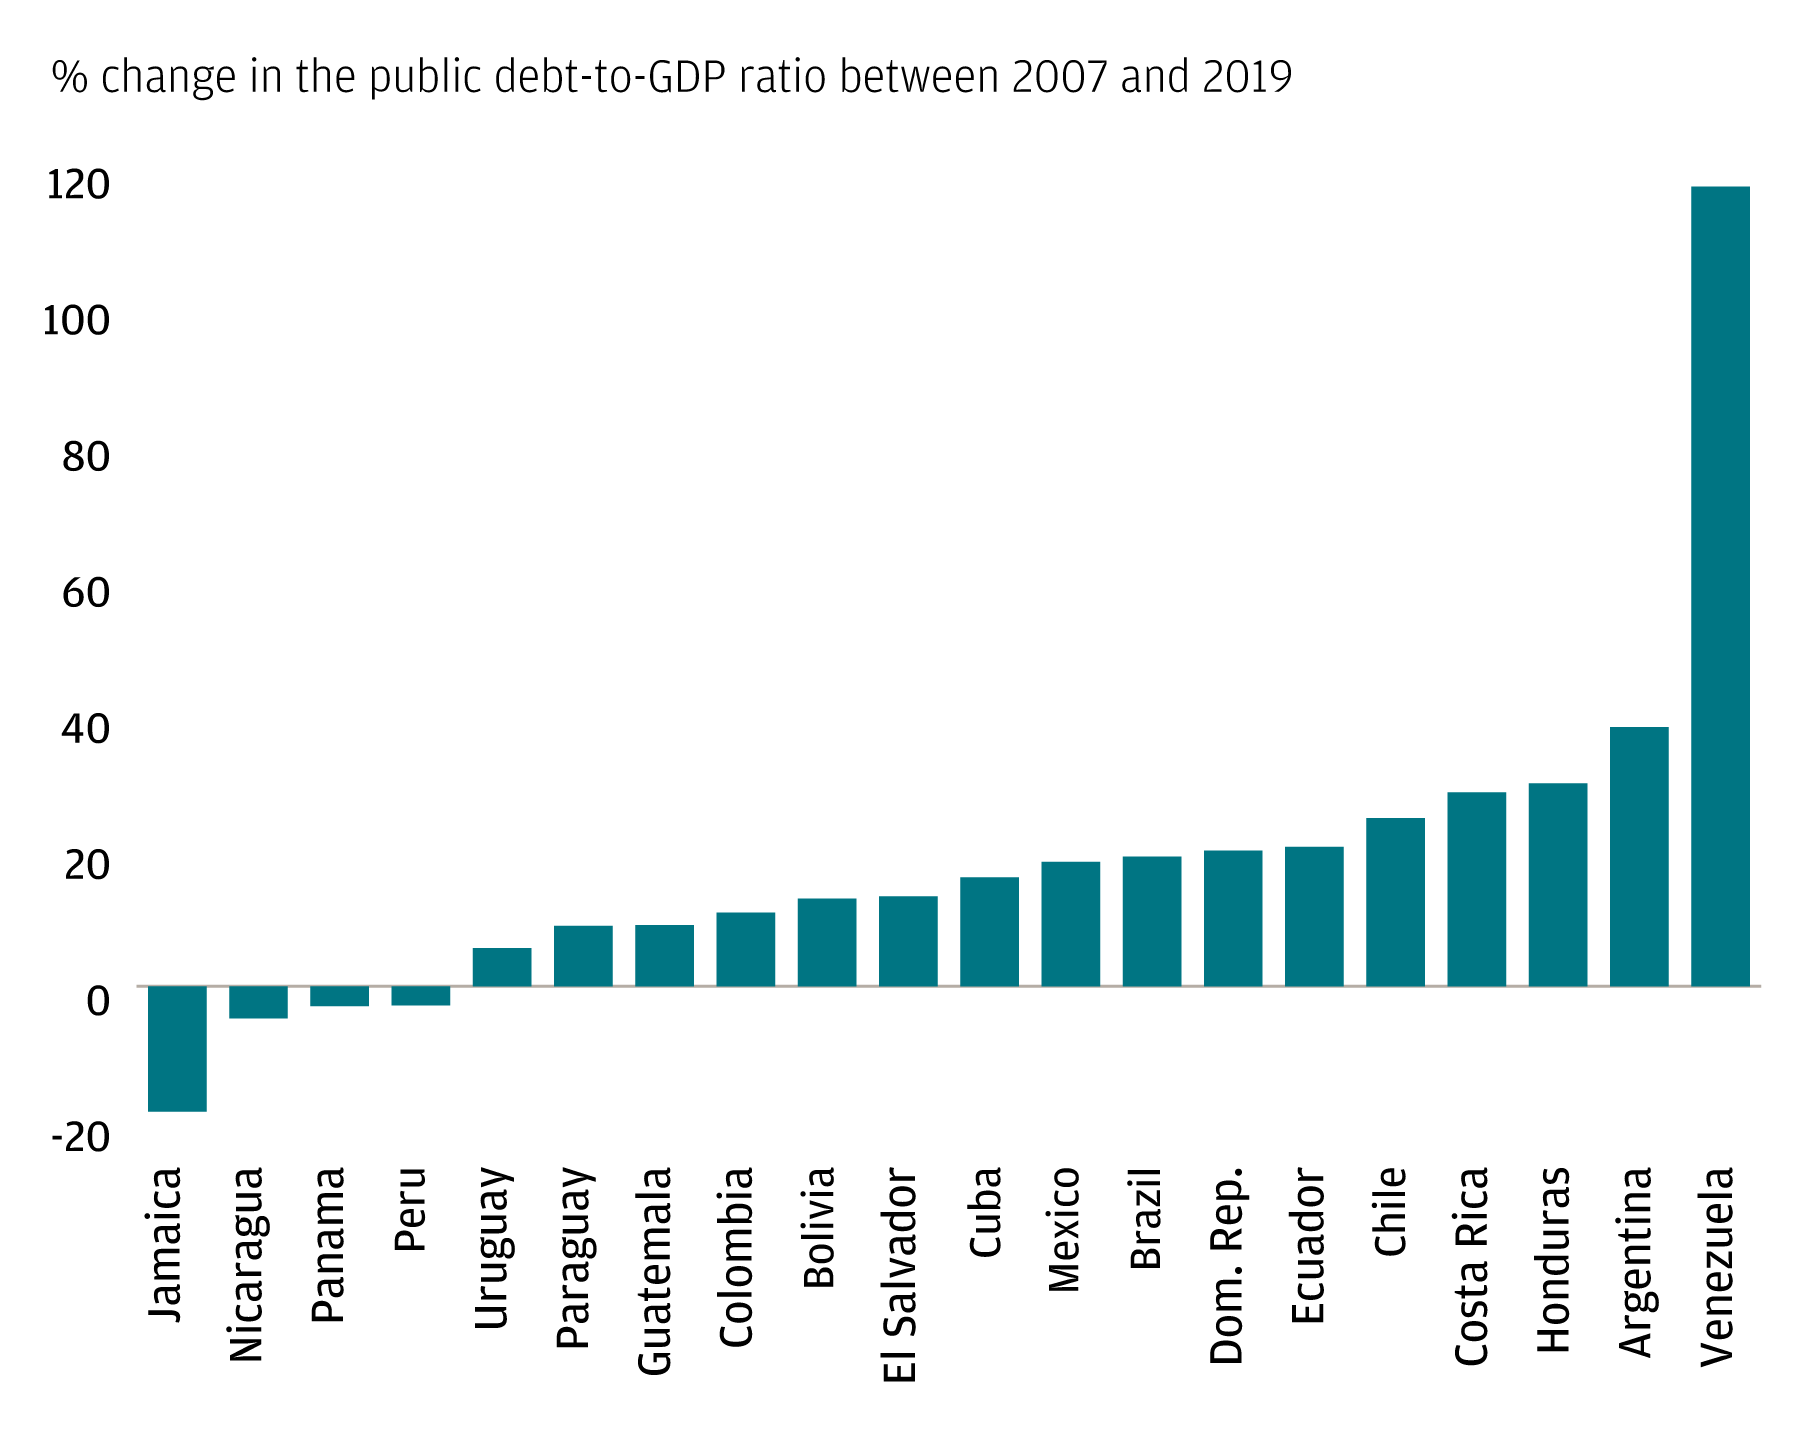 A bar chart showing the percentage-point change in the public debt-to-GDP ratio between 2007 and 2019 for select Latin America and Caribbean countries.